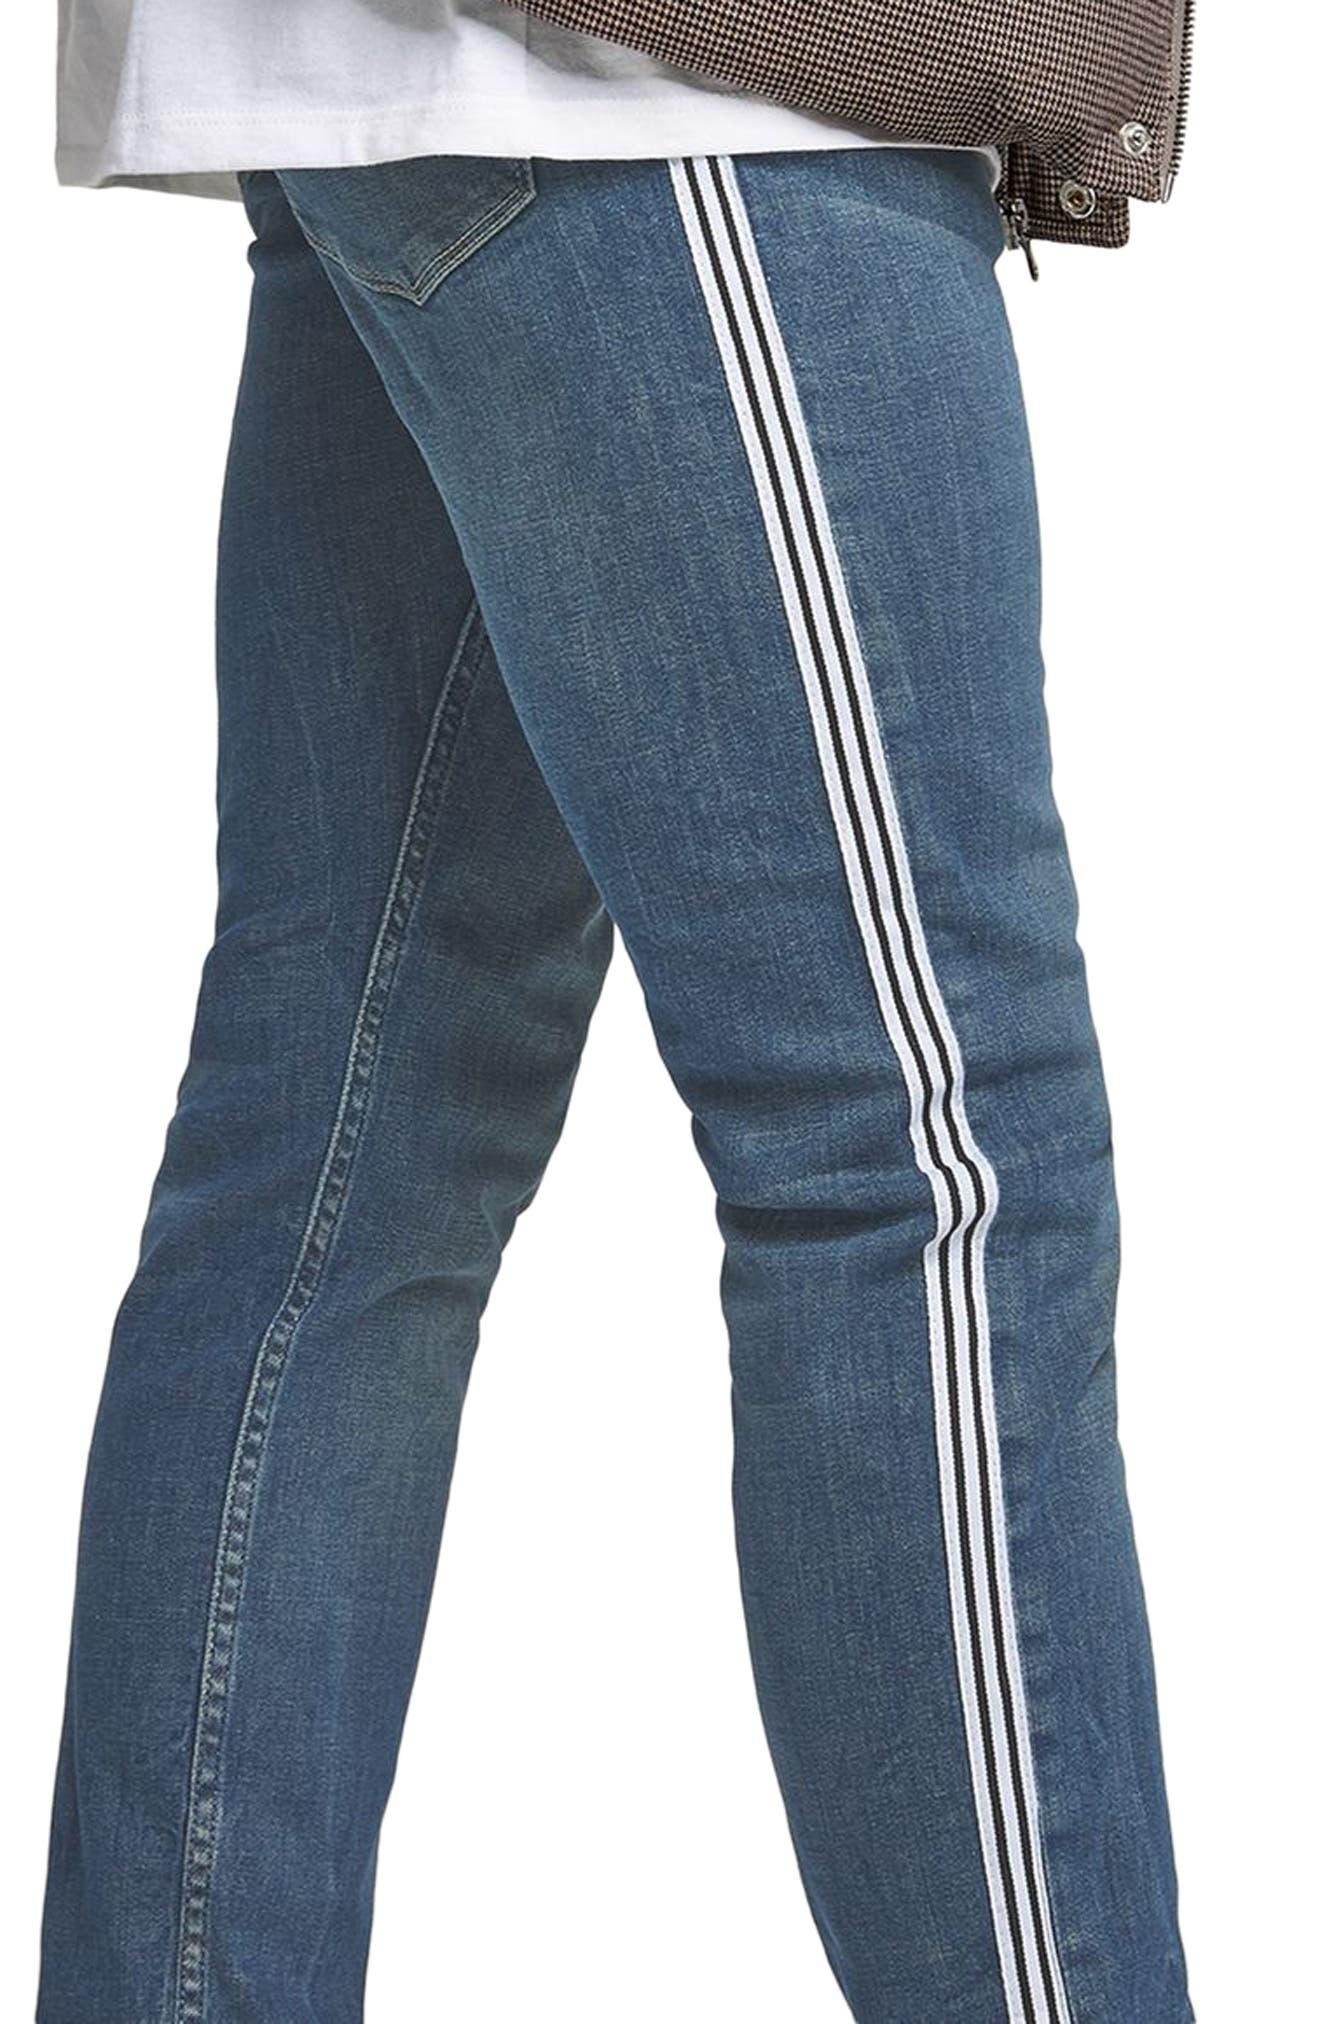 TOPMAN,                             Tape Stretch Skinny Fit Jeans,                             Alternate thumbnail 3, color,                             400